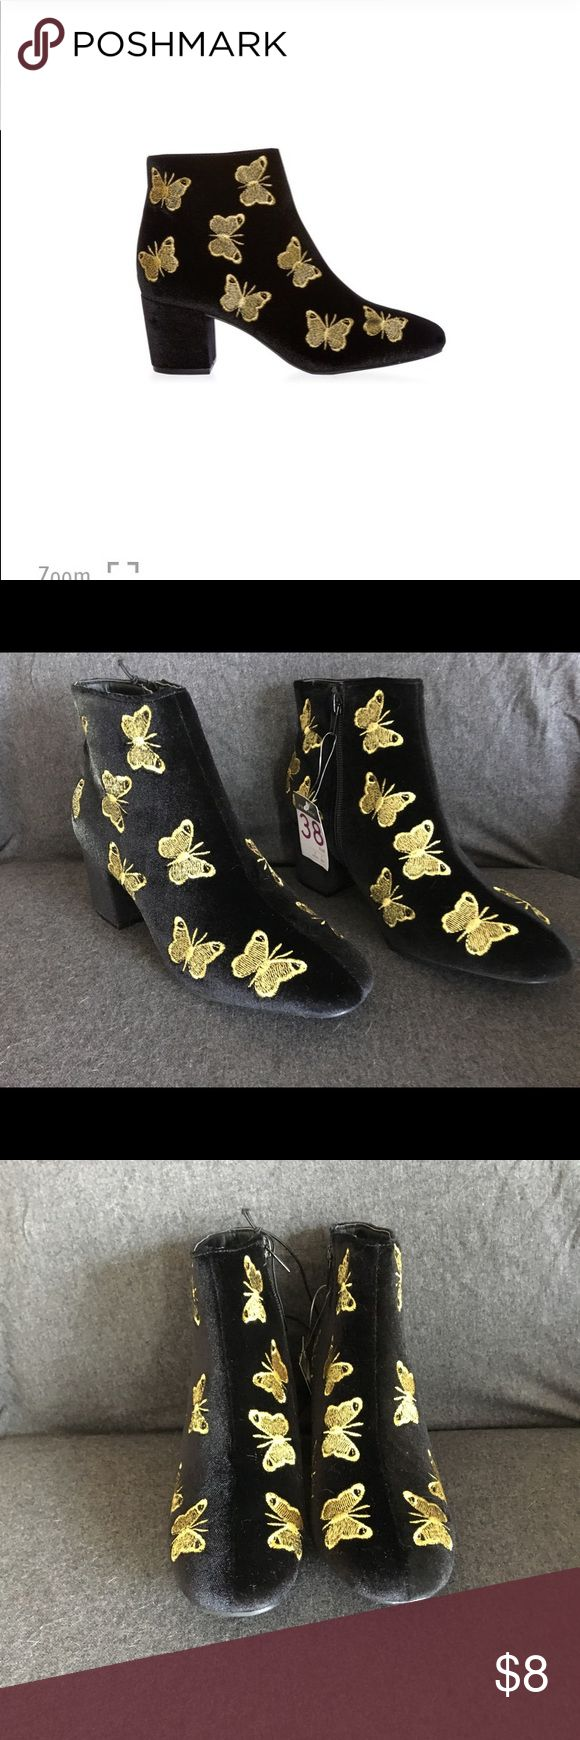 Primark Embroidered Butterfly ankle boots 38 NEW  Black Velvet with gold embroidered butterflies.  Block heel of 2.5 inches.   Size 38 fits like a 7.5 Size 39 fits like an 8.5 primark Shoes Ankle Boots & Booties